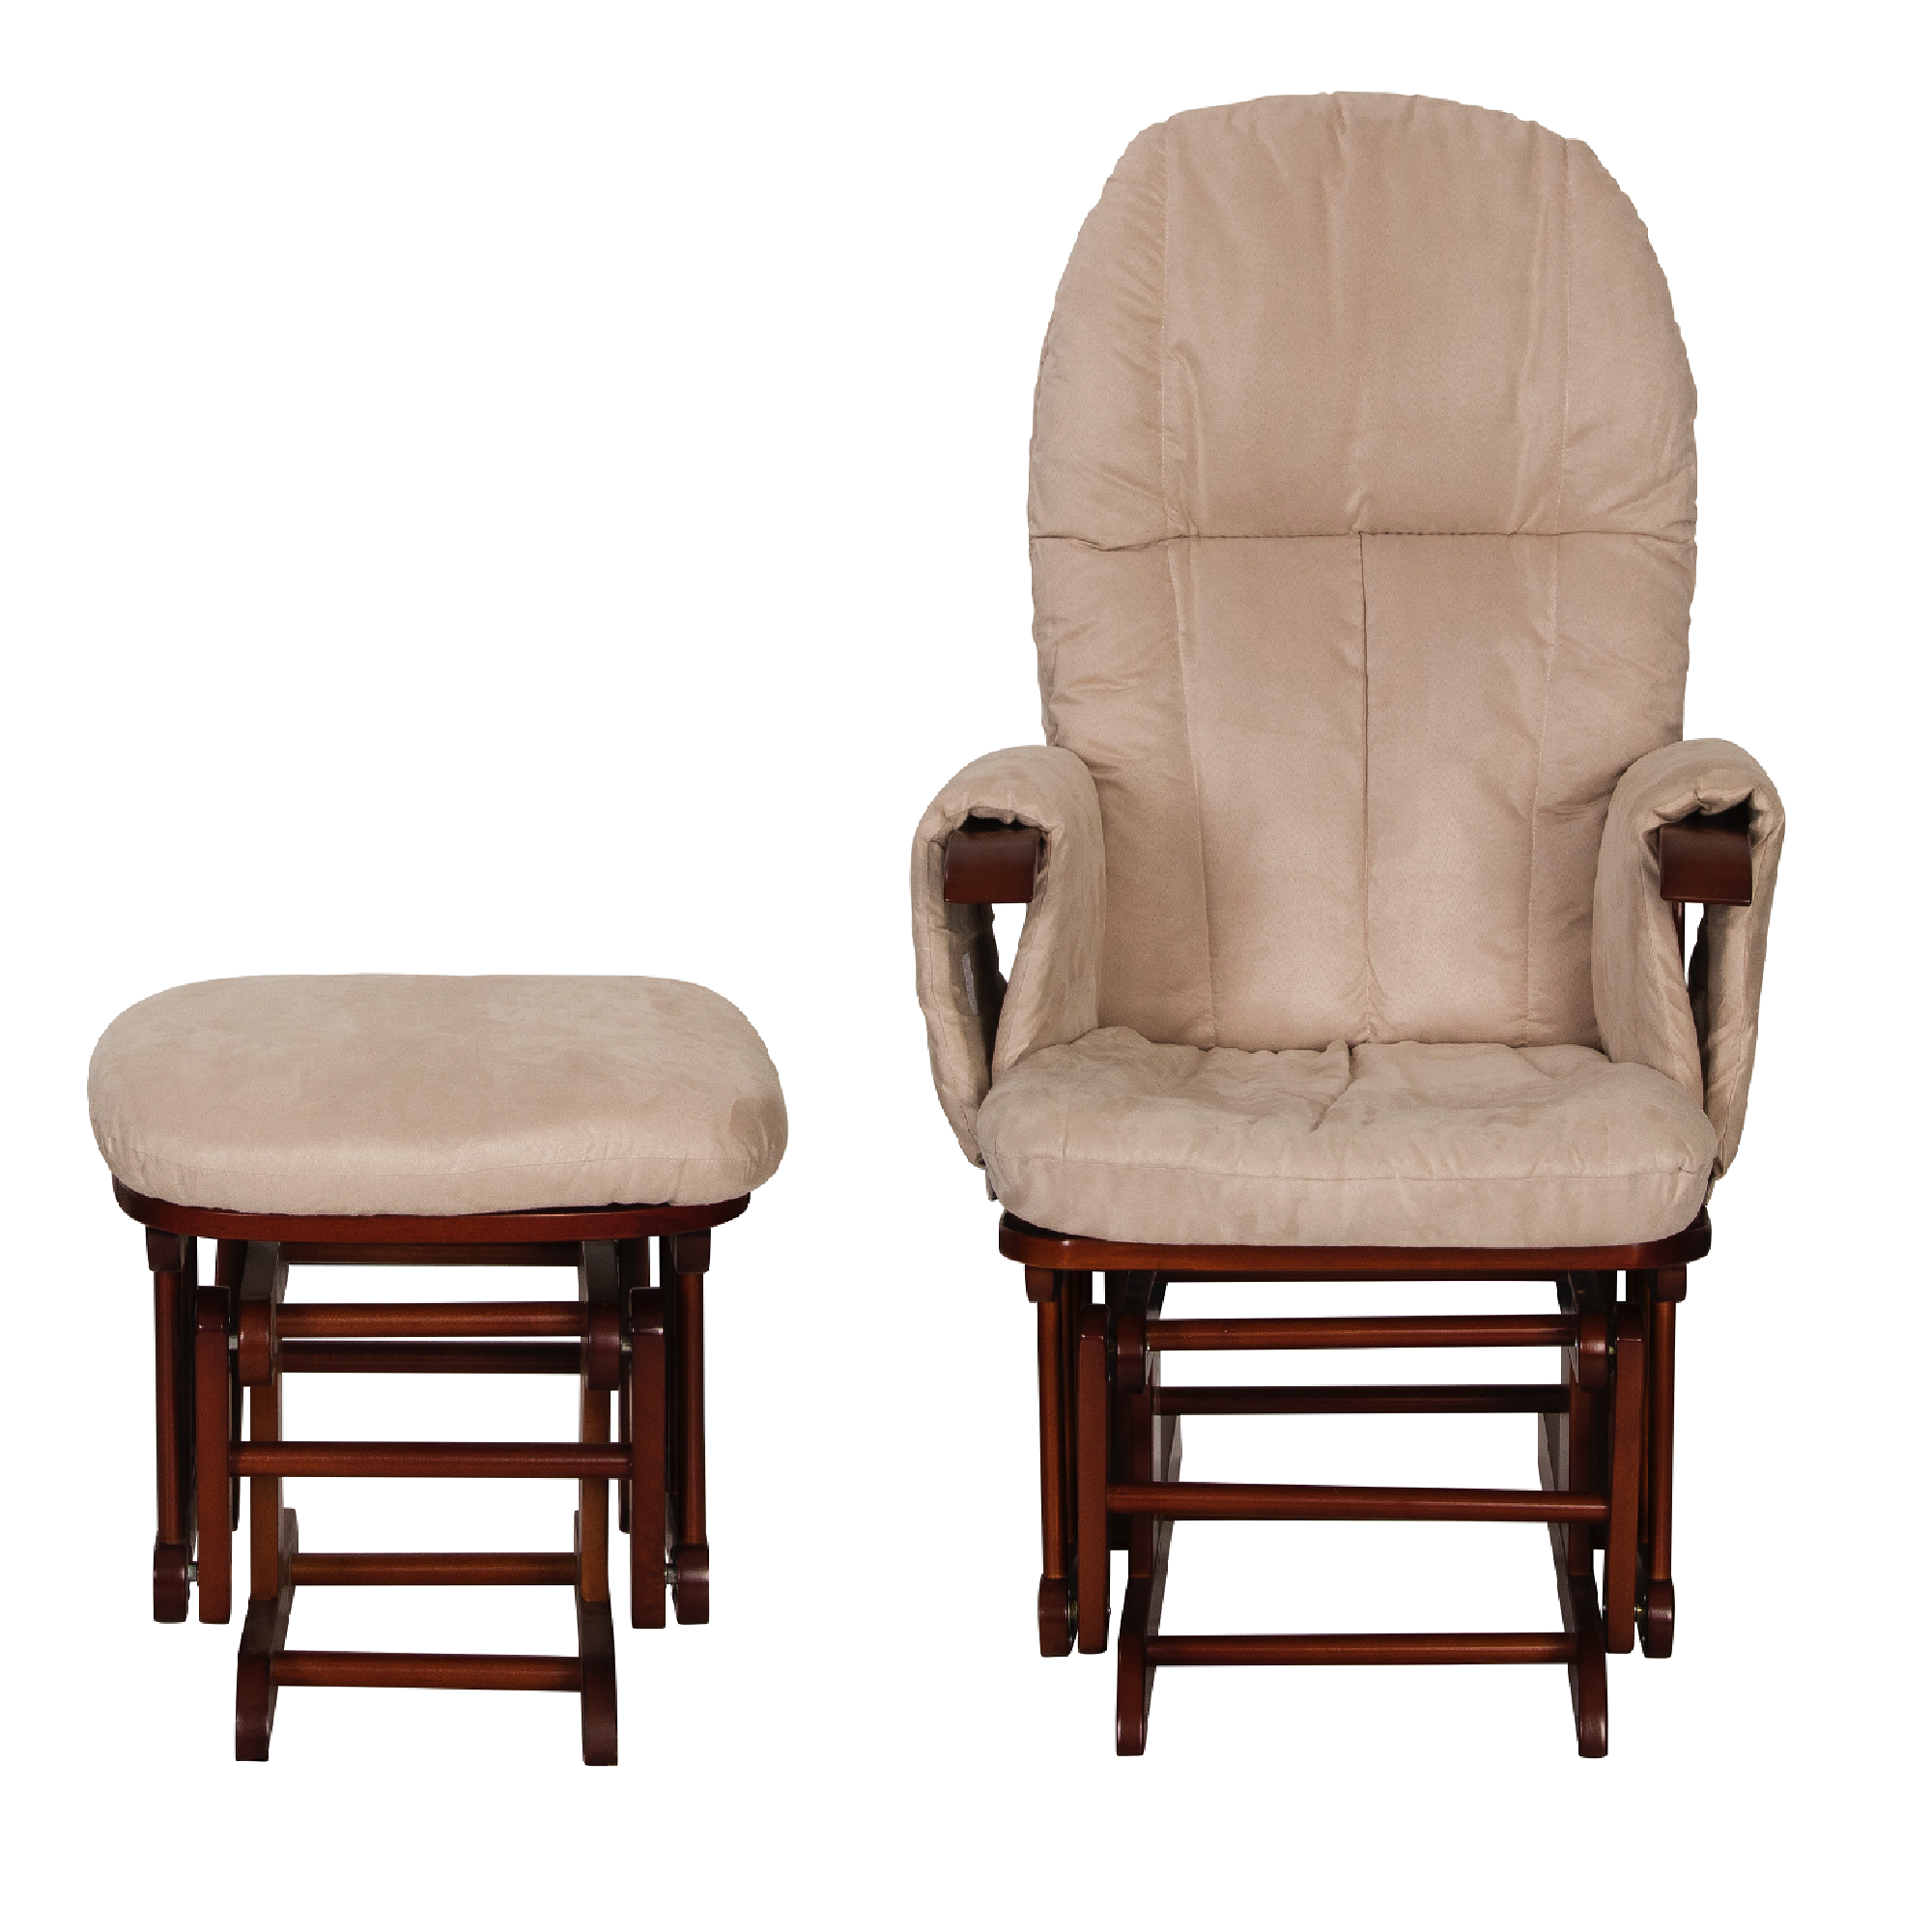 low cost e6227 38627 Tutti Bambini Reclining Glider Chair & Stool - Walnut with Cream Cushions